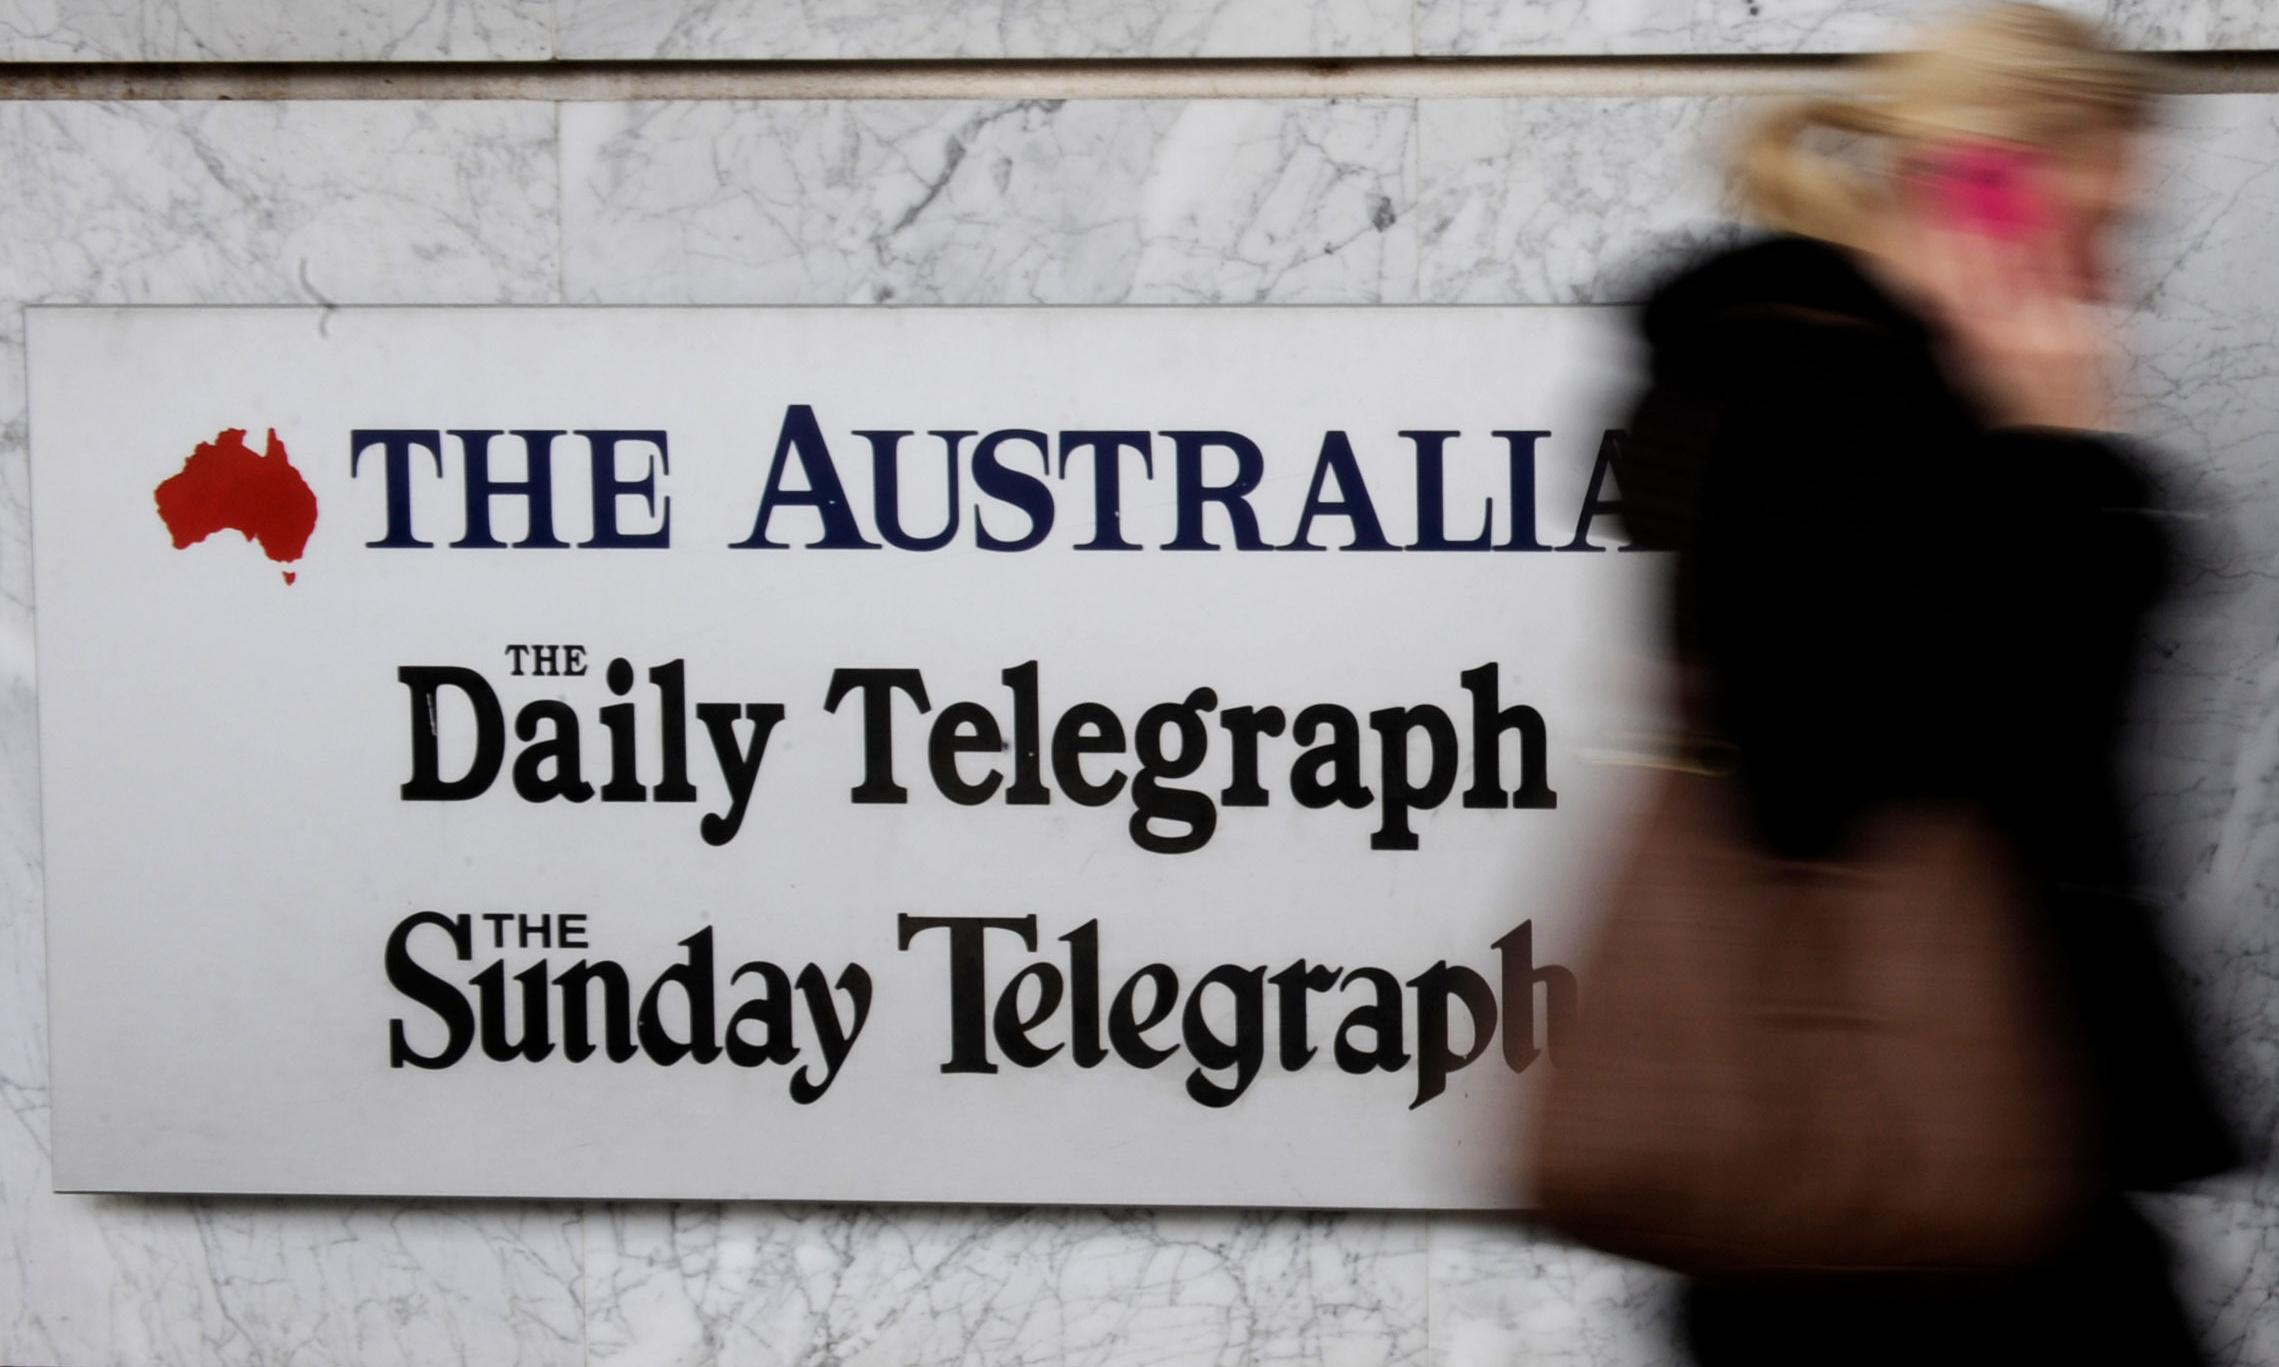 Empire strikes back: News Corp turns blowtorch on former Australian reporter